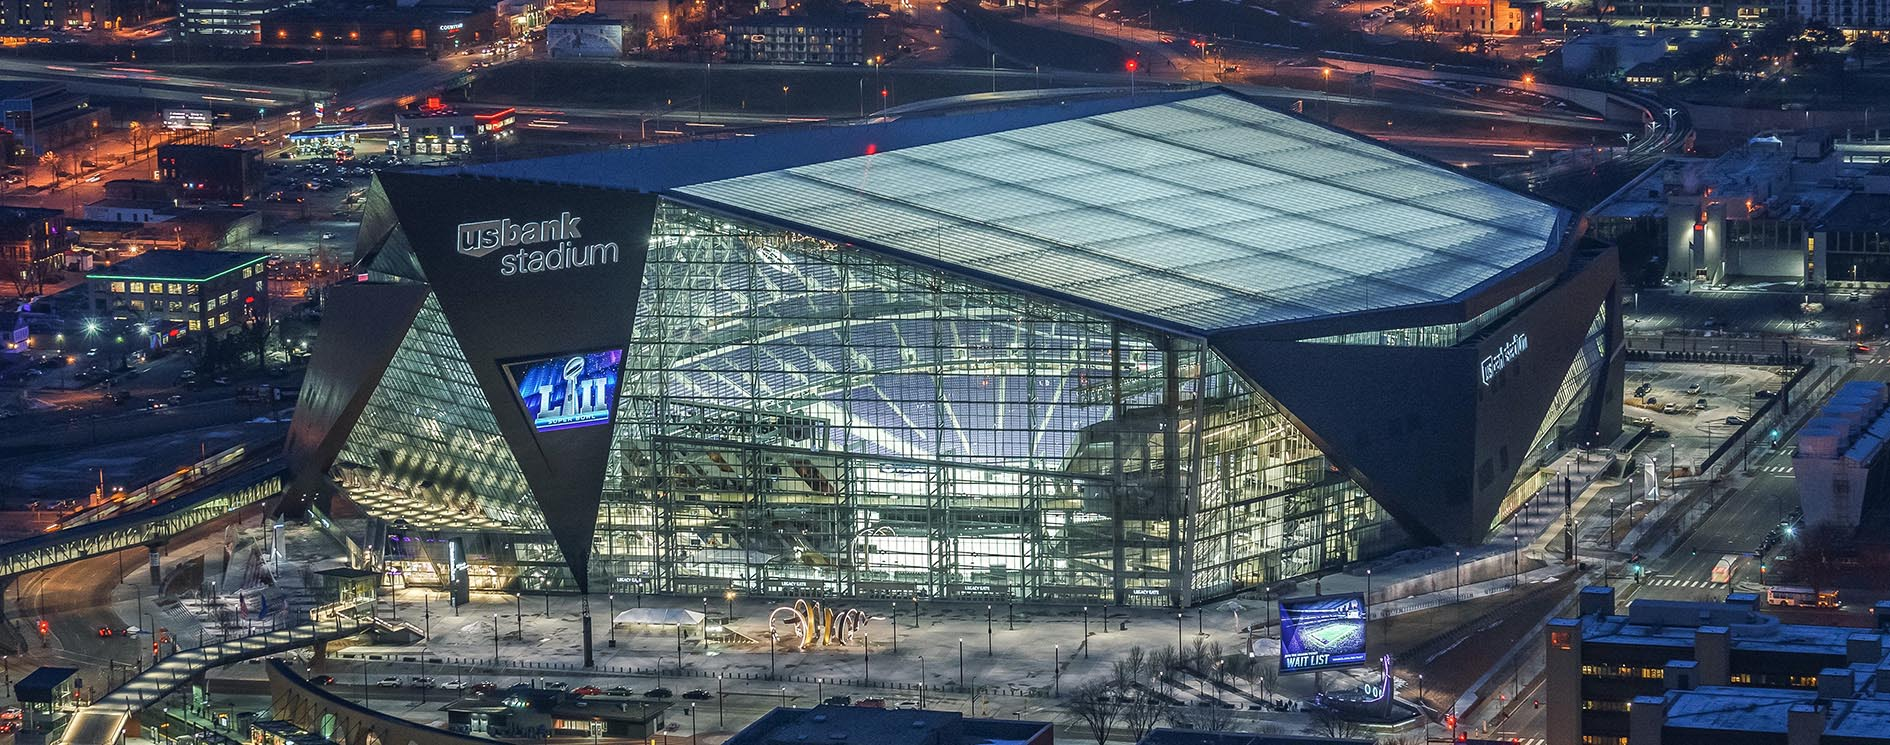 Exterior: Everything You Ever Wanted To Know About US Bank Stadium